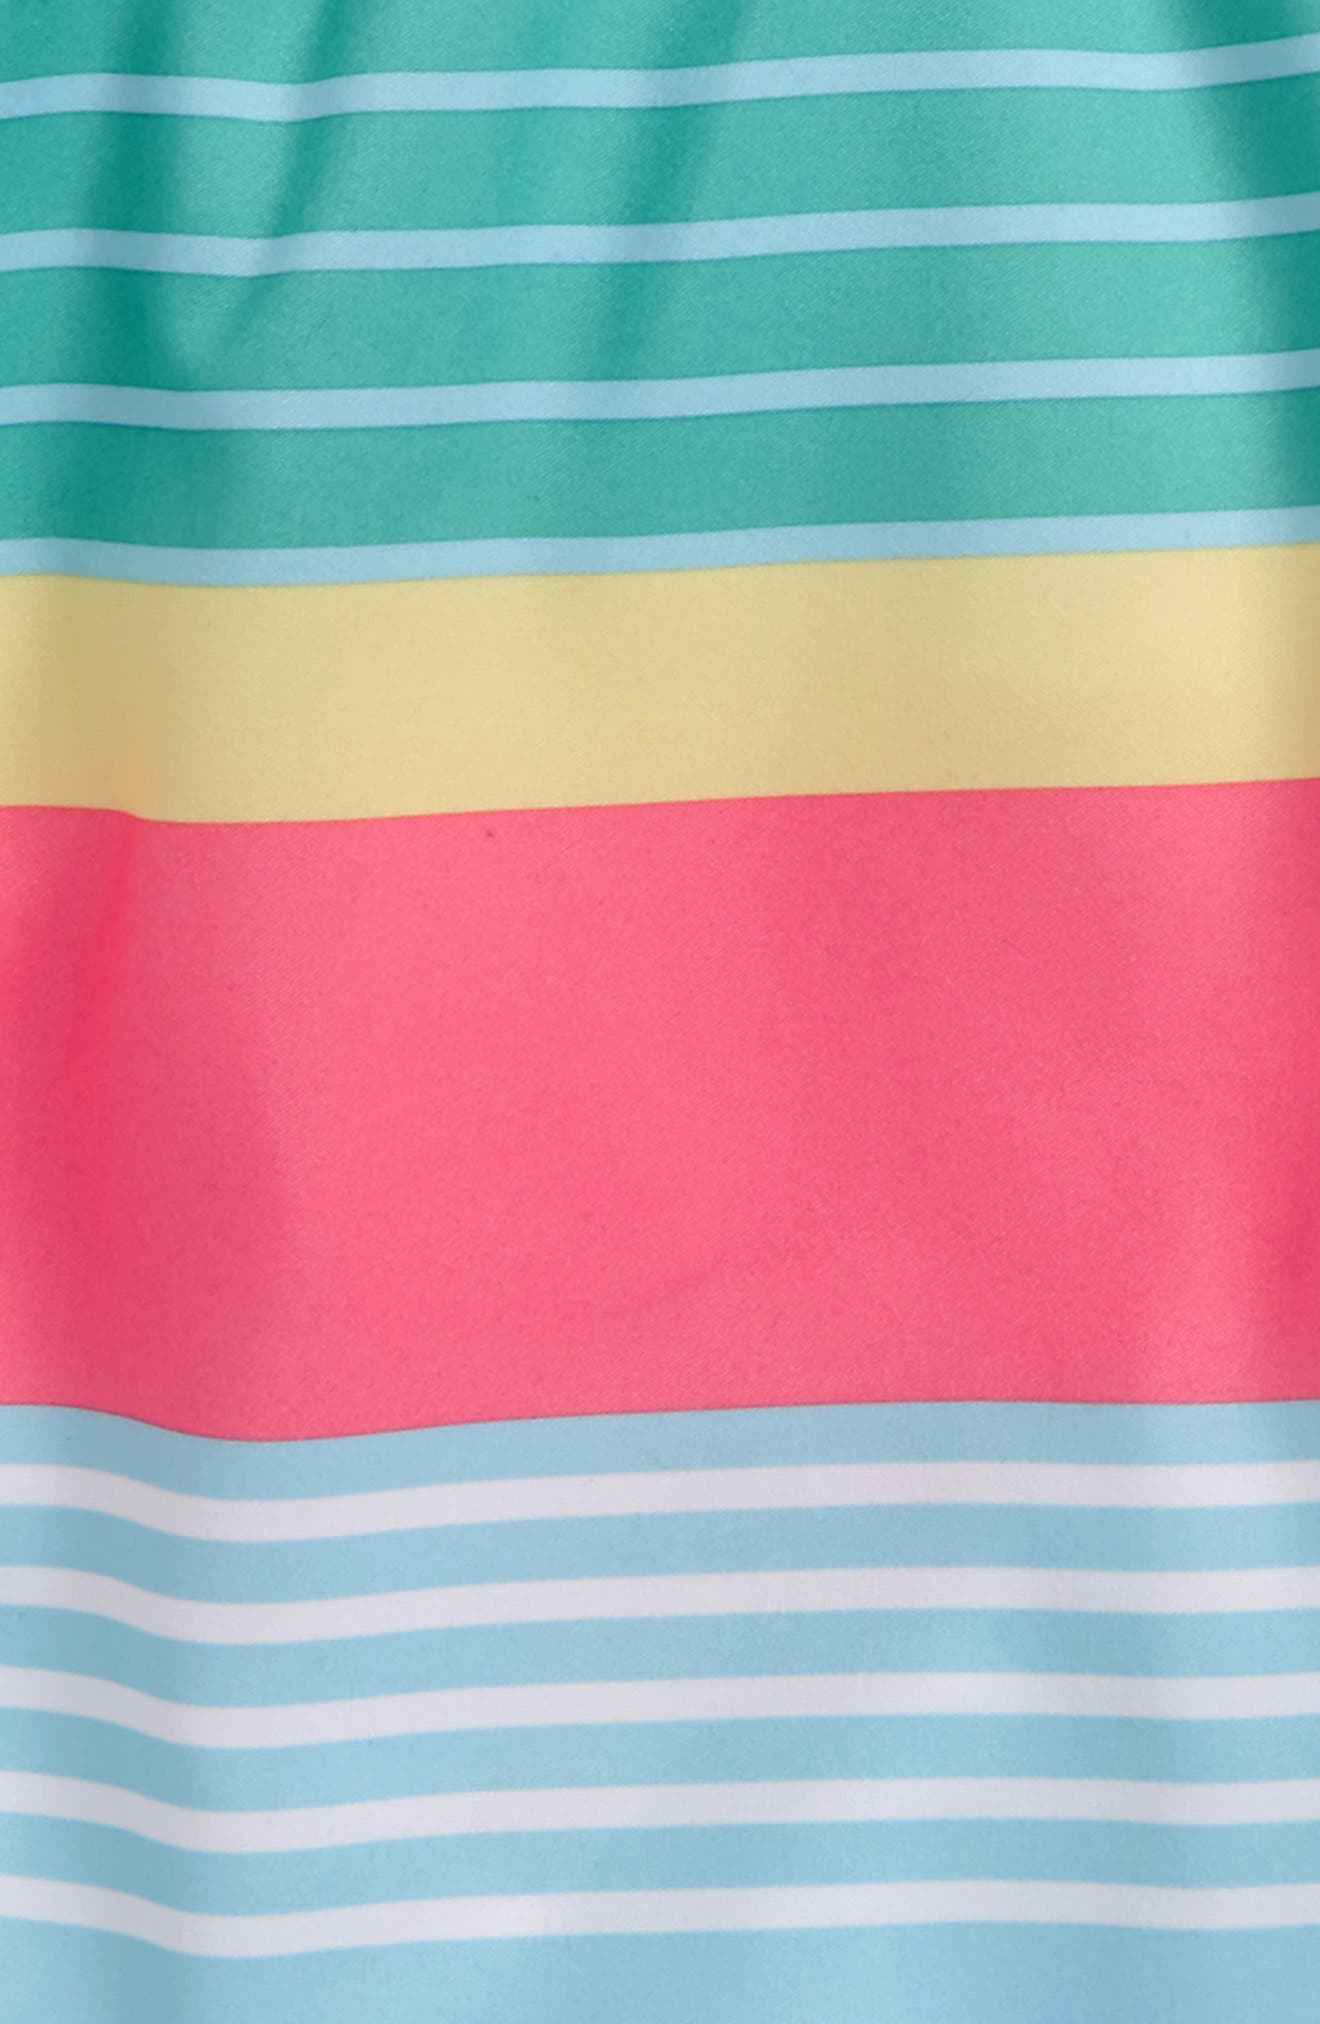 Chappy Boca Bay Stripe Swim Trunks,                             Alternate thumbnail 3, color,                             Sea Splash